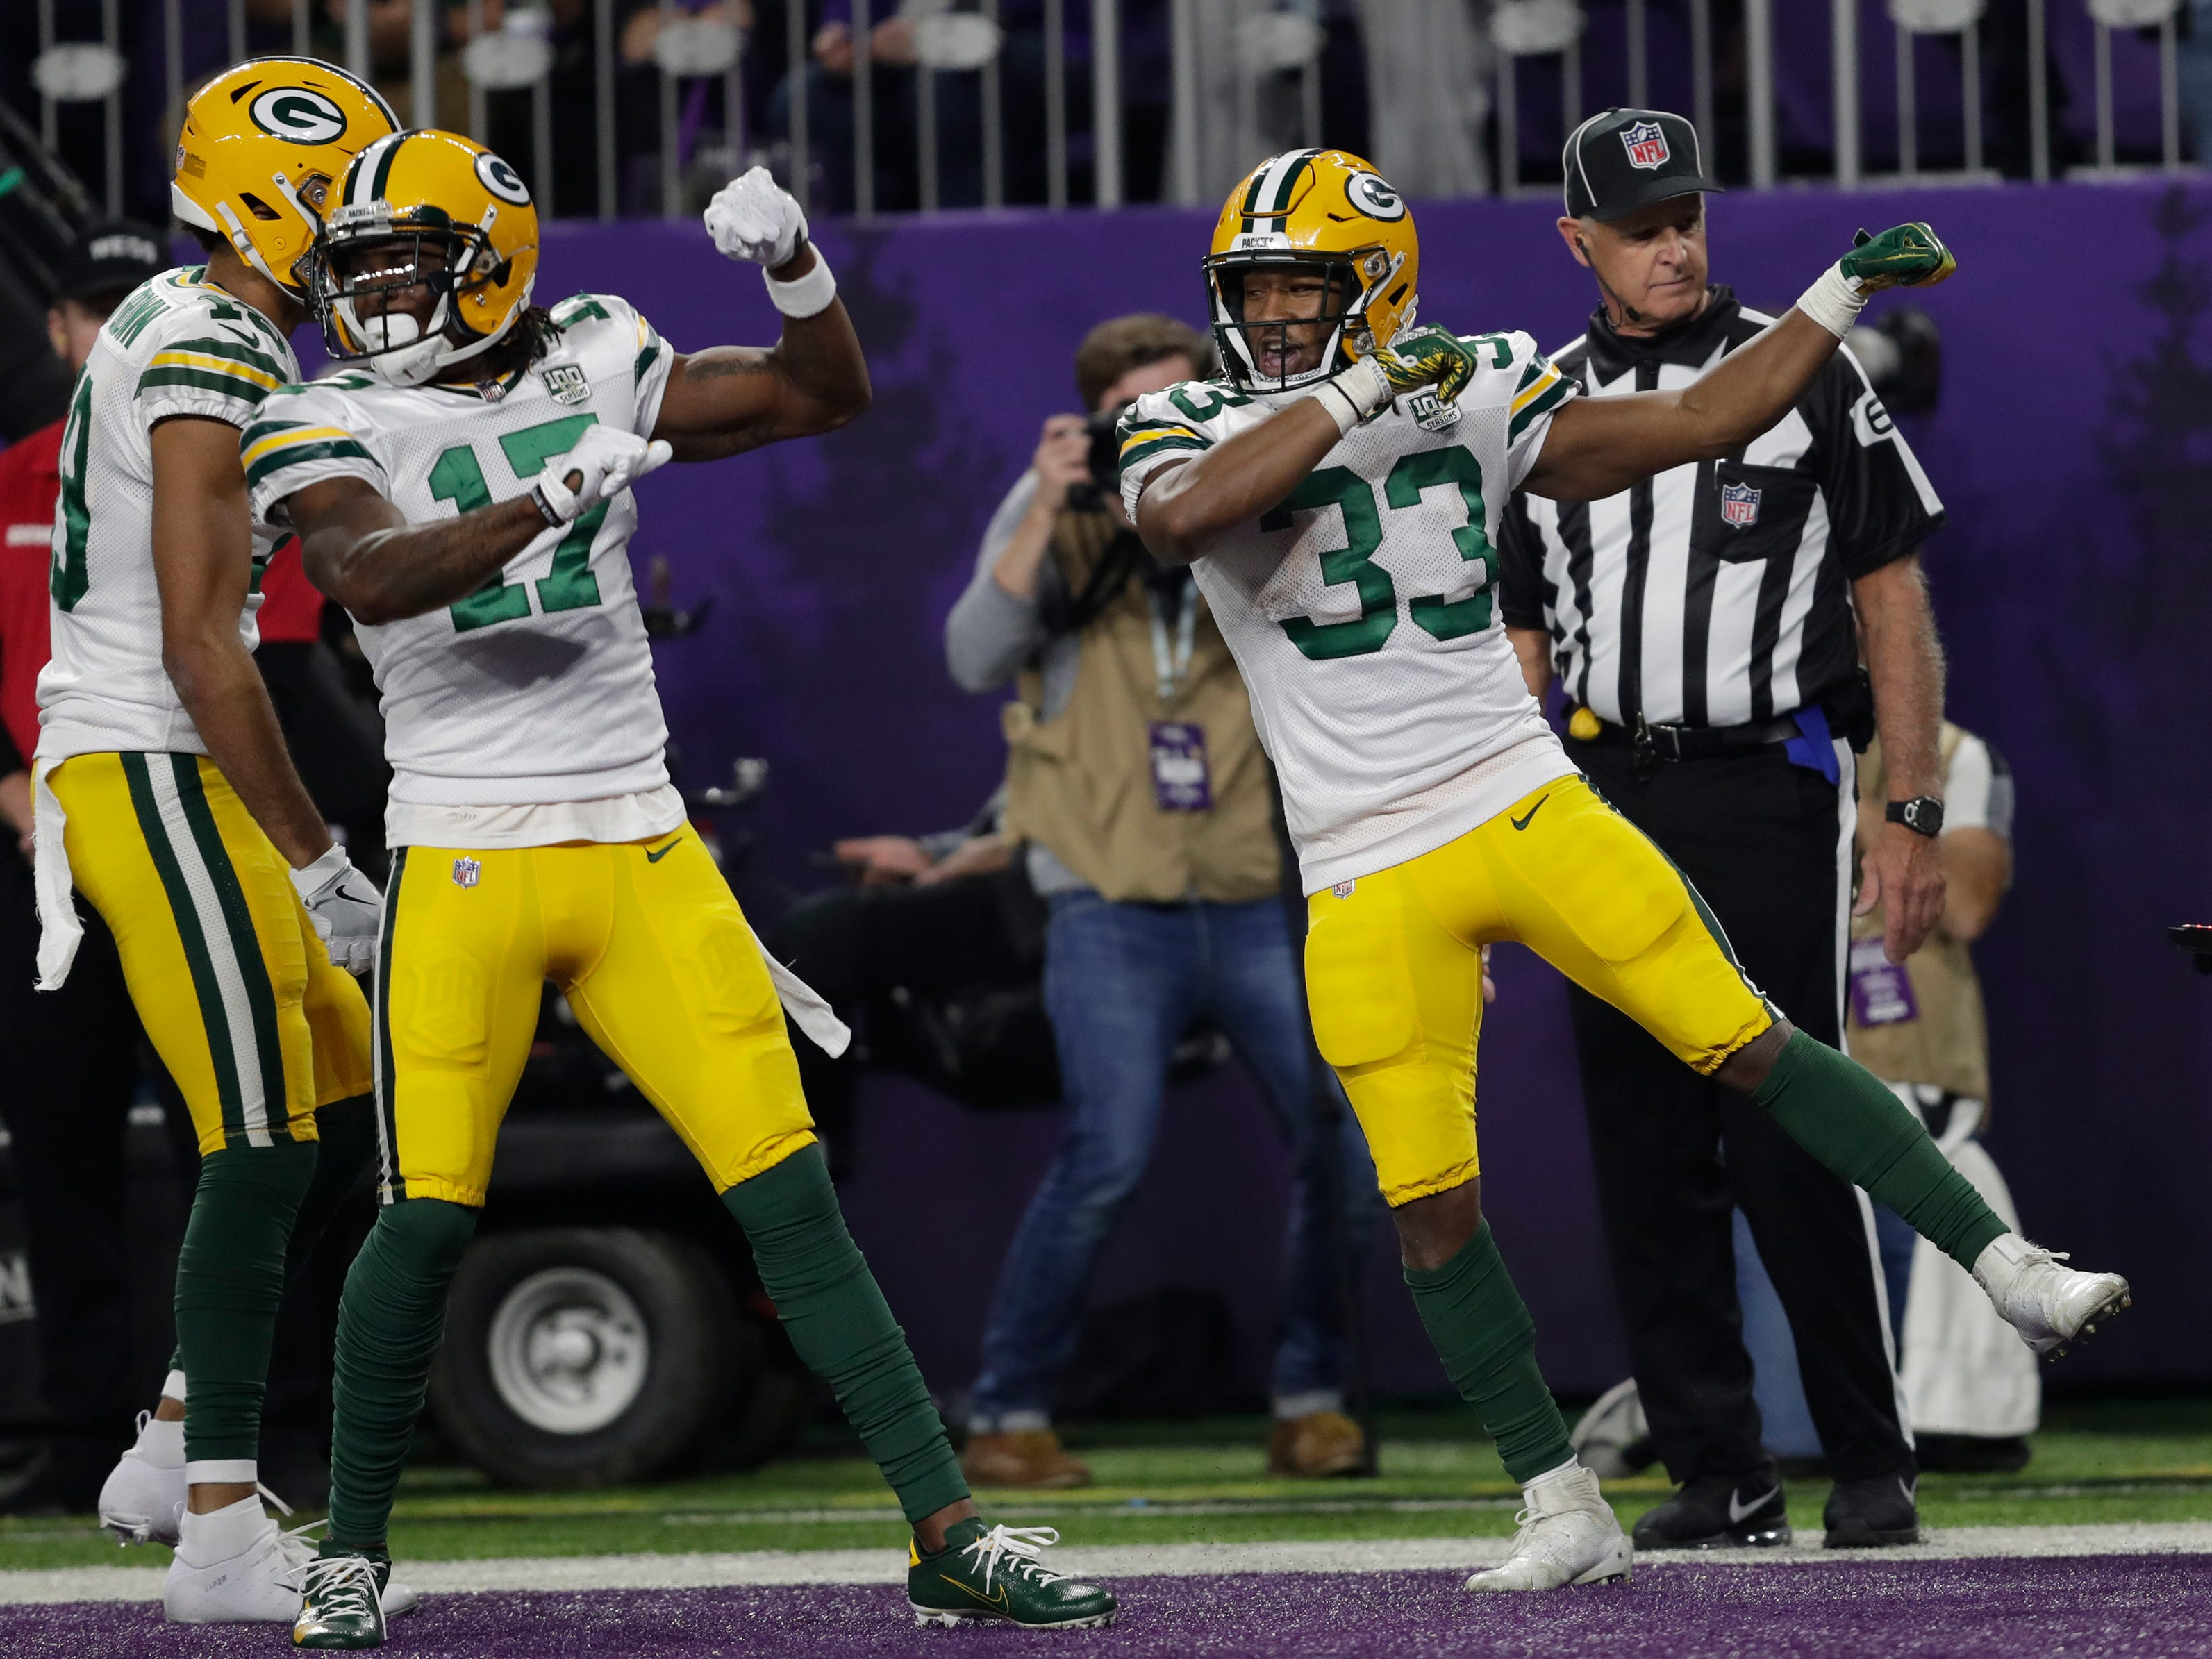 Green Bay Packers running back Aaron Jones (33) celebrates his touchdown run with wide receiver Davante Adams (17) in the second quarter during their football game Sunday, November 25, 2018, at U.S. Bank Stadium in Minneapolis, Minn. 